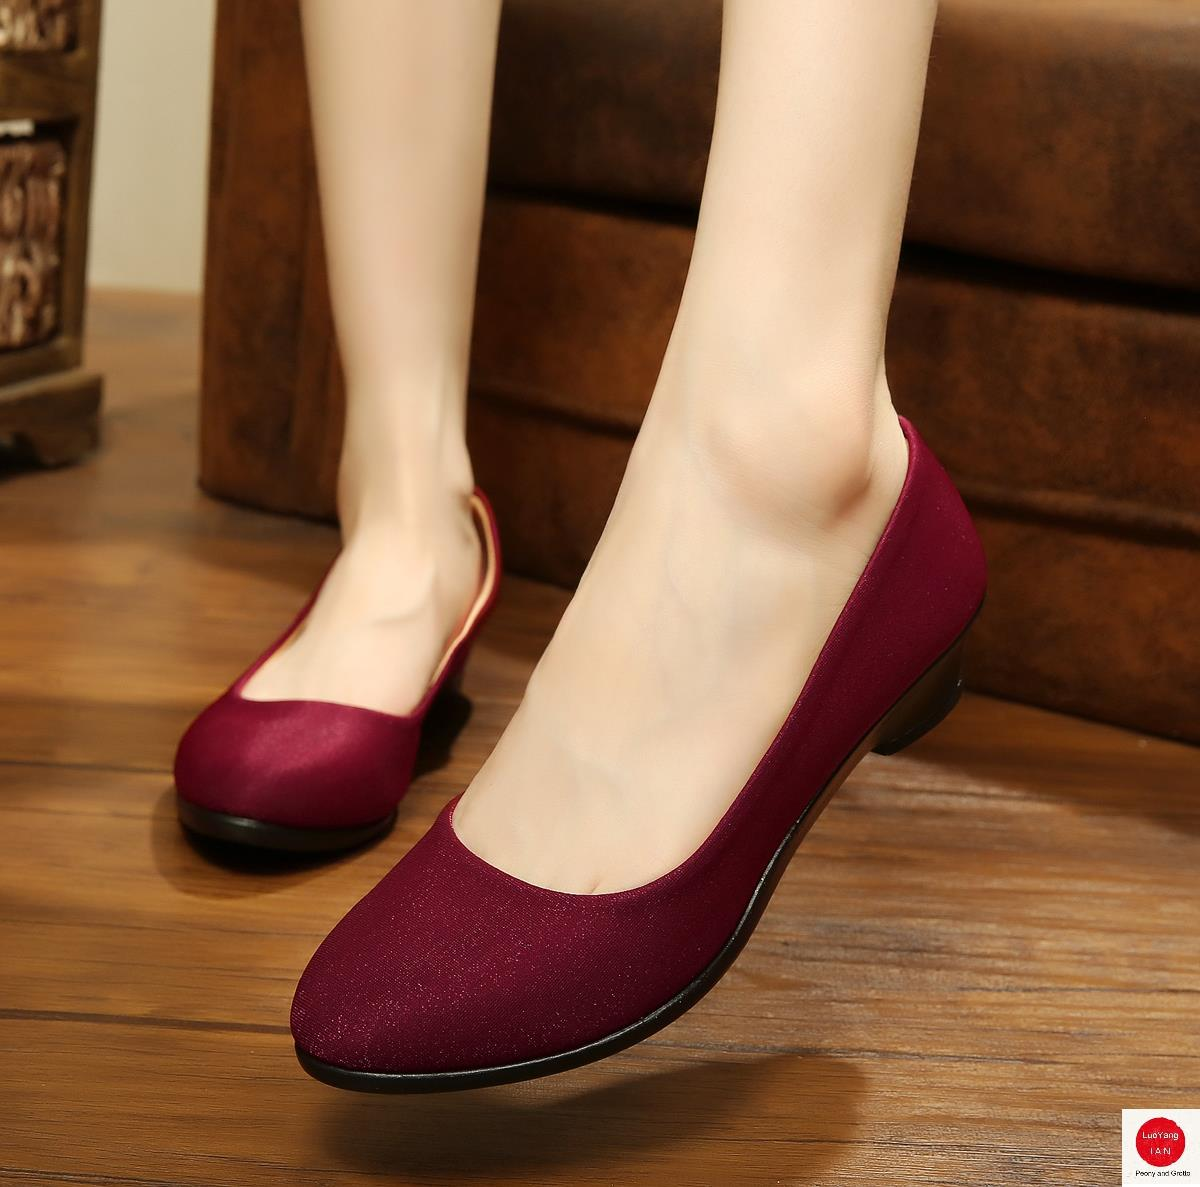 Women Shoes Women Ballet Flats Shoes for Work Cloth Flats Sweet Loafers Slip On Womens Pregnant Flat Shoes Oversize Boat Shoes<br><br>Aliexpress